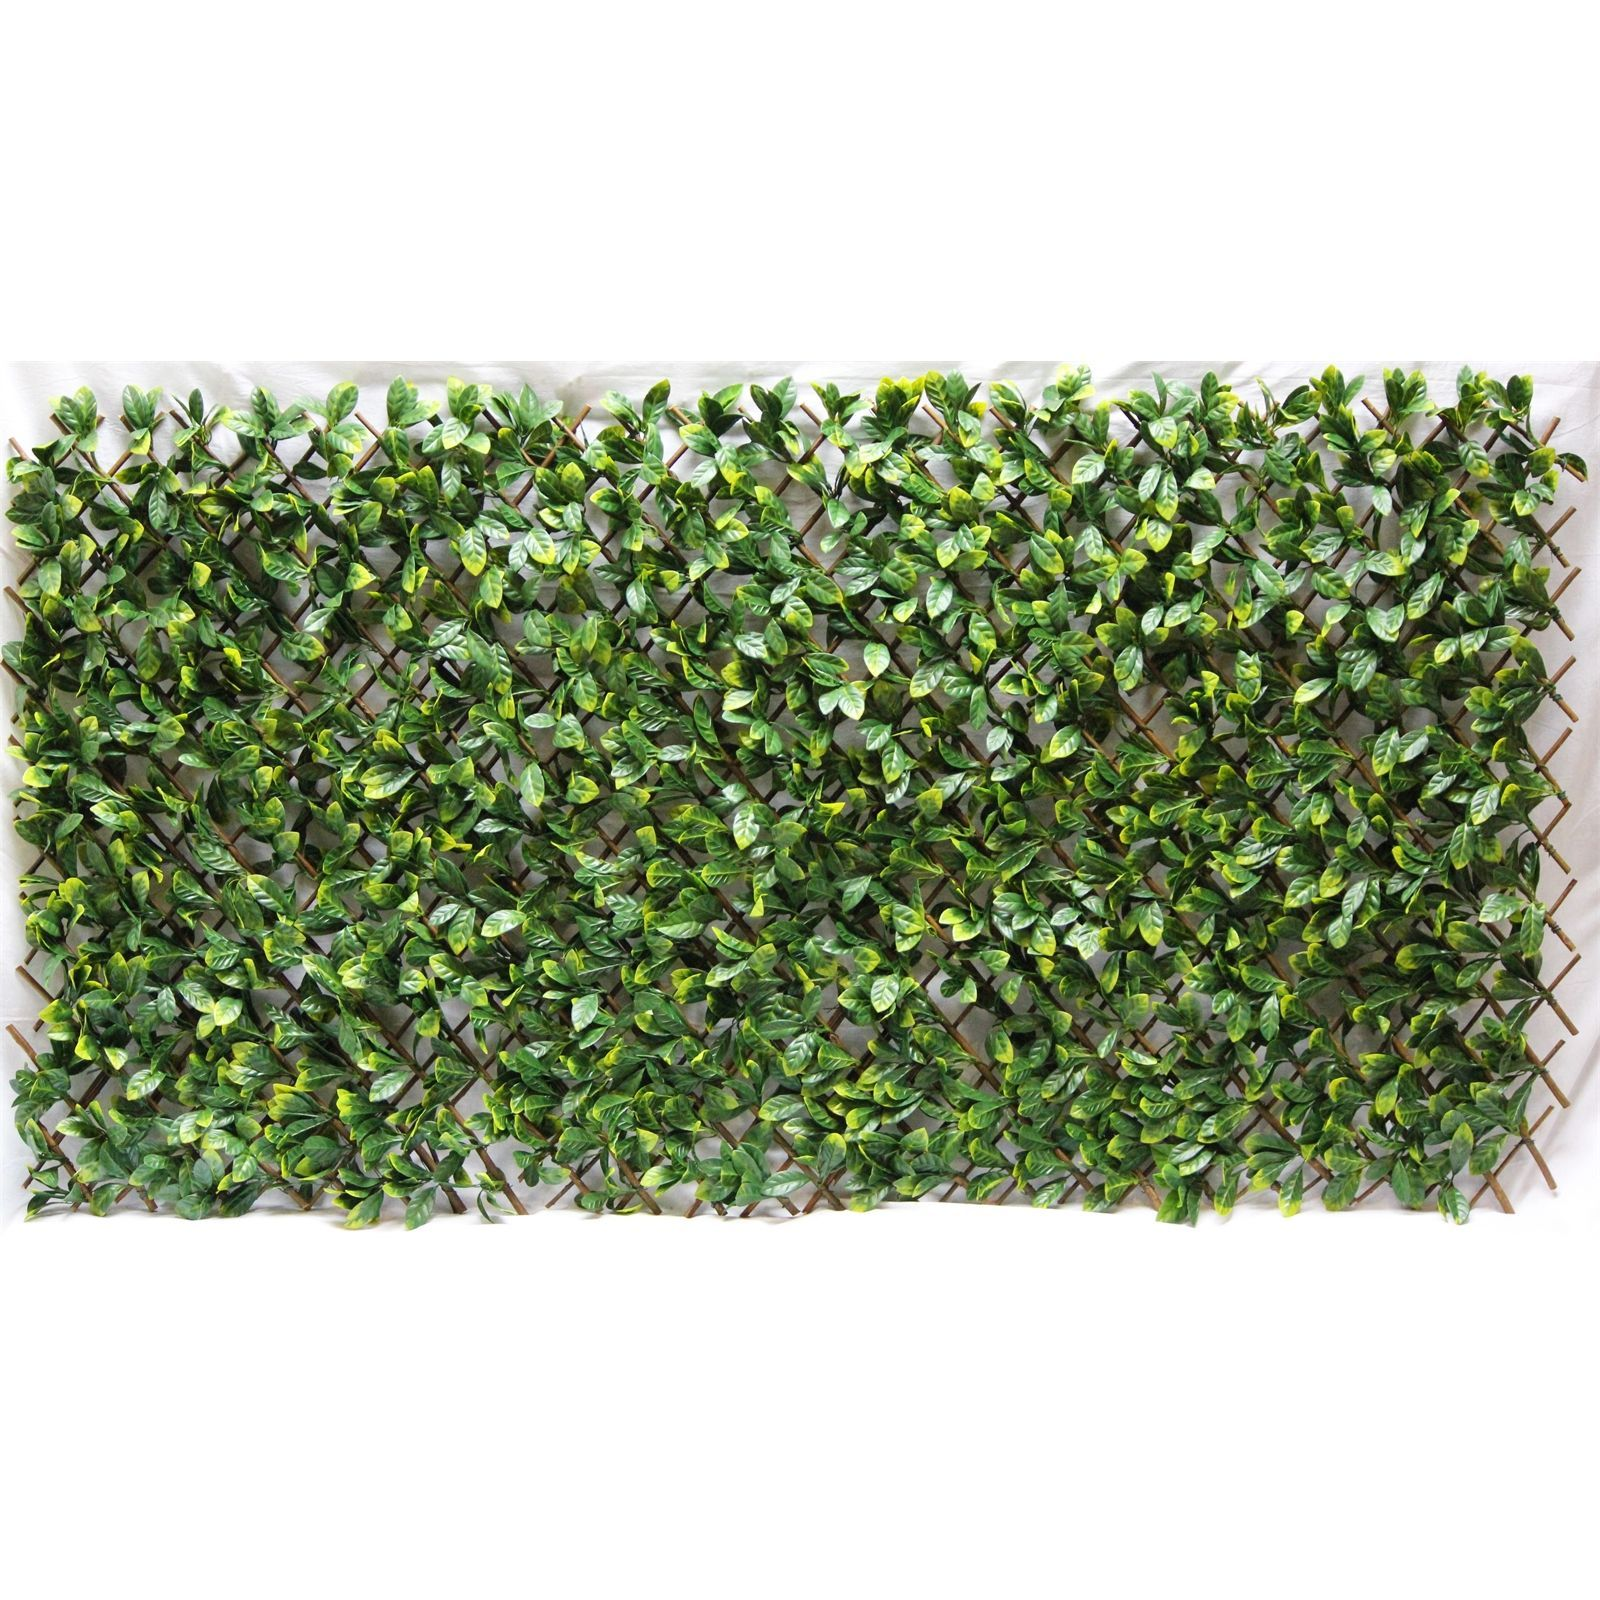 Fake Brick Wall Bunnings Bunnings Artificial Wall 1m By 2m 55 Artificialplantsindoor